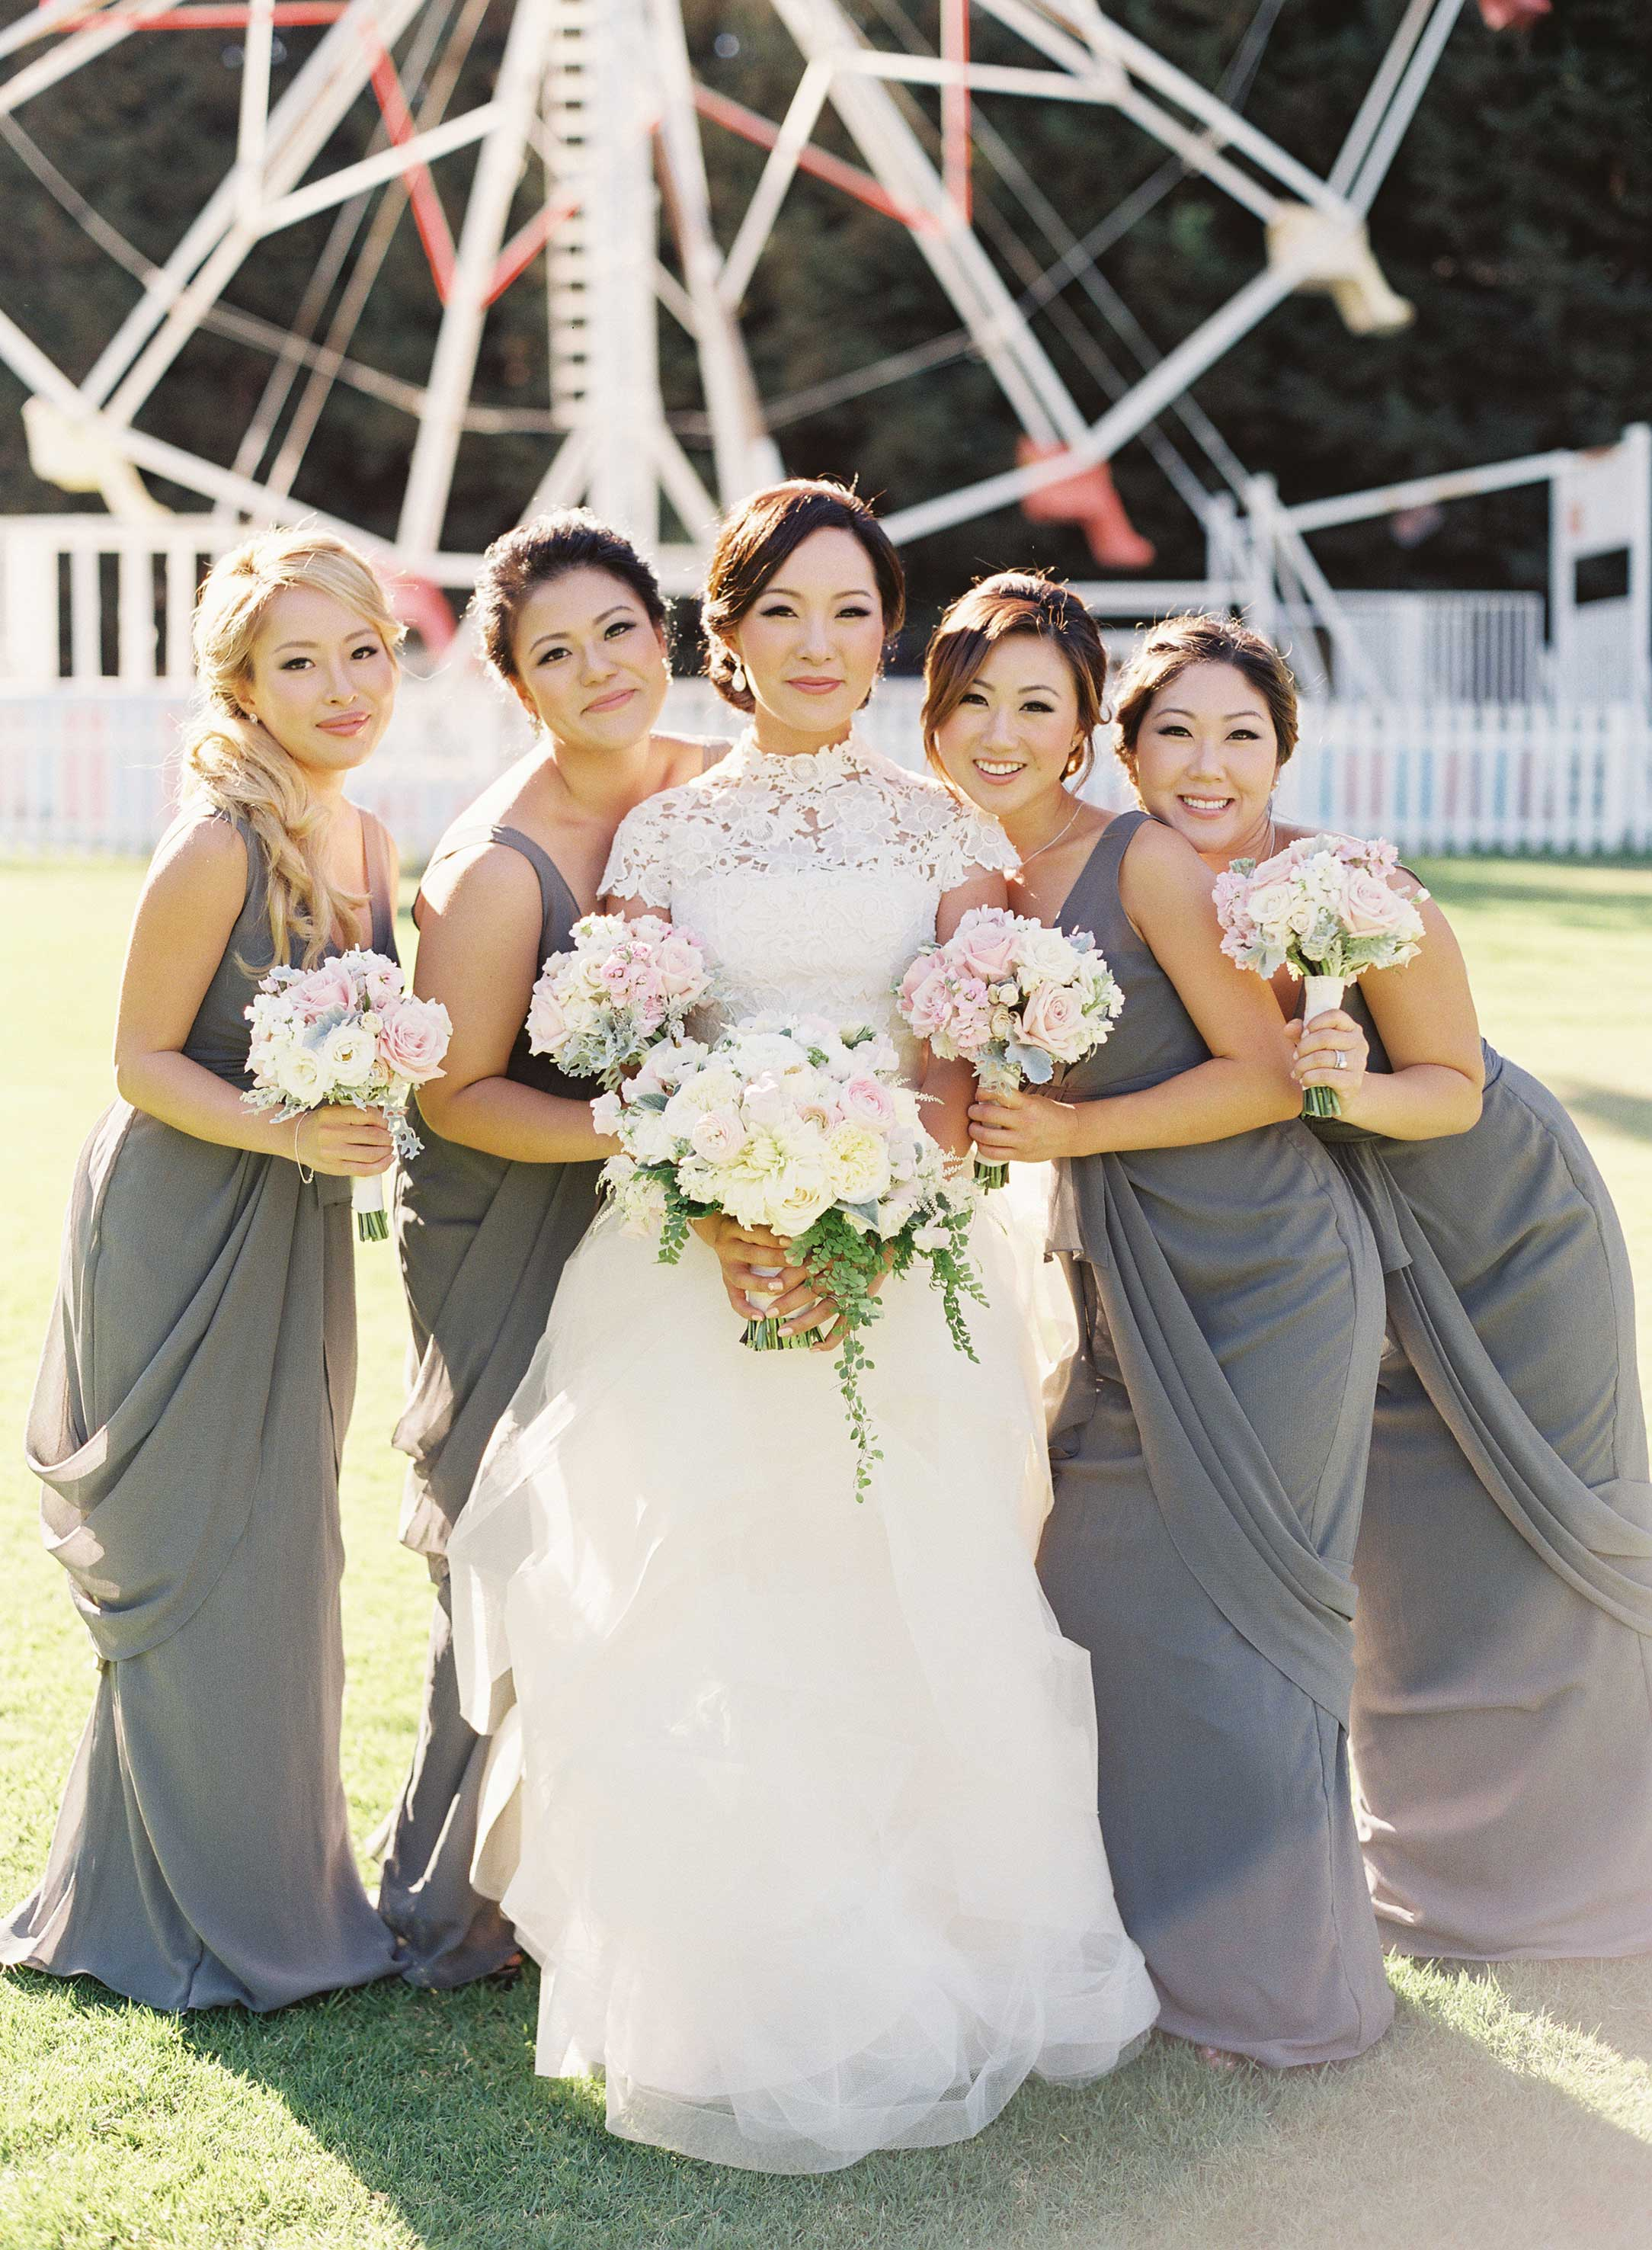 Wedding color palette 16 grey wedding dcor ideas inside weddings draped grey bridesmaid dresses ombrellifo Gallery